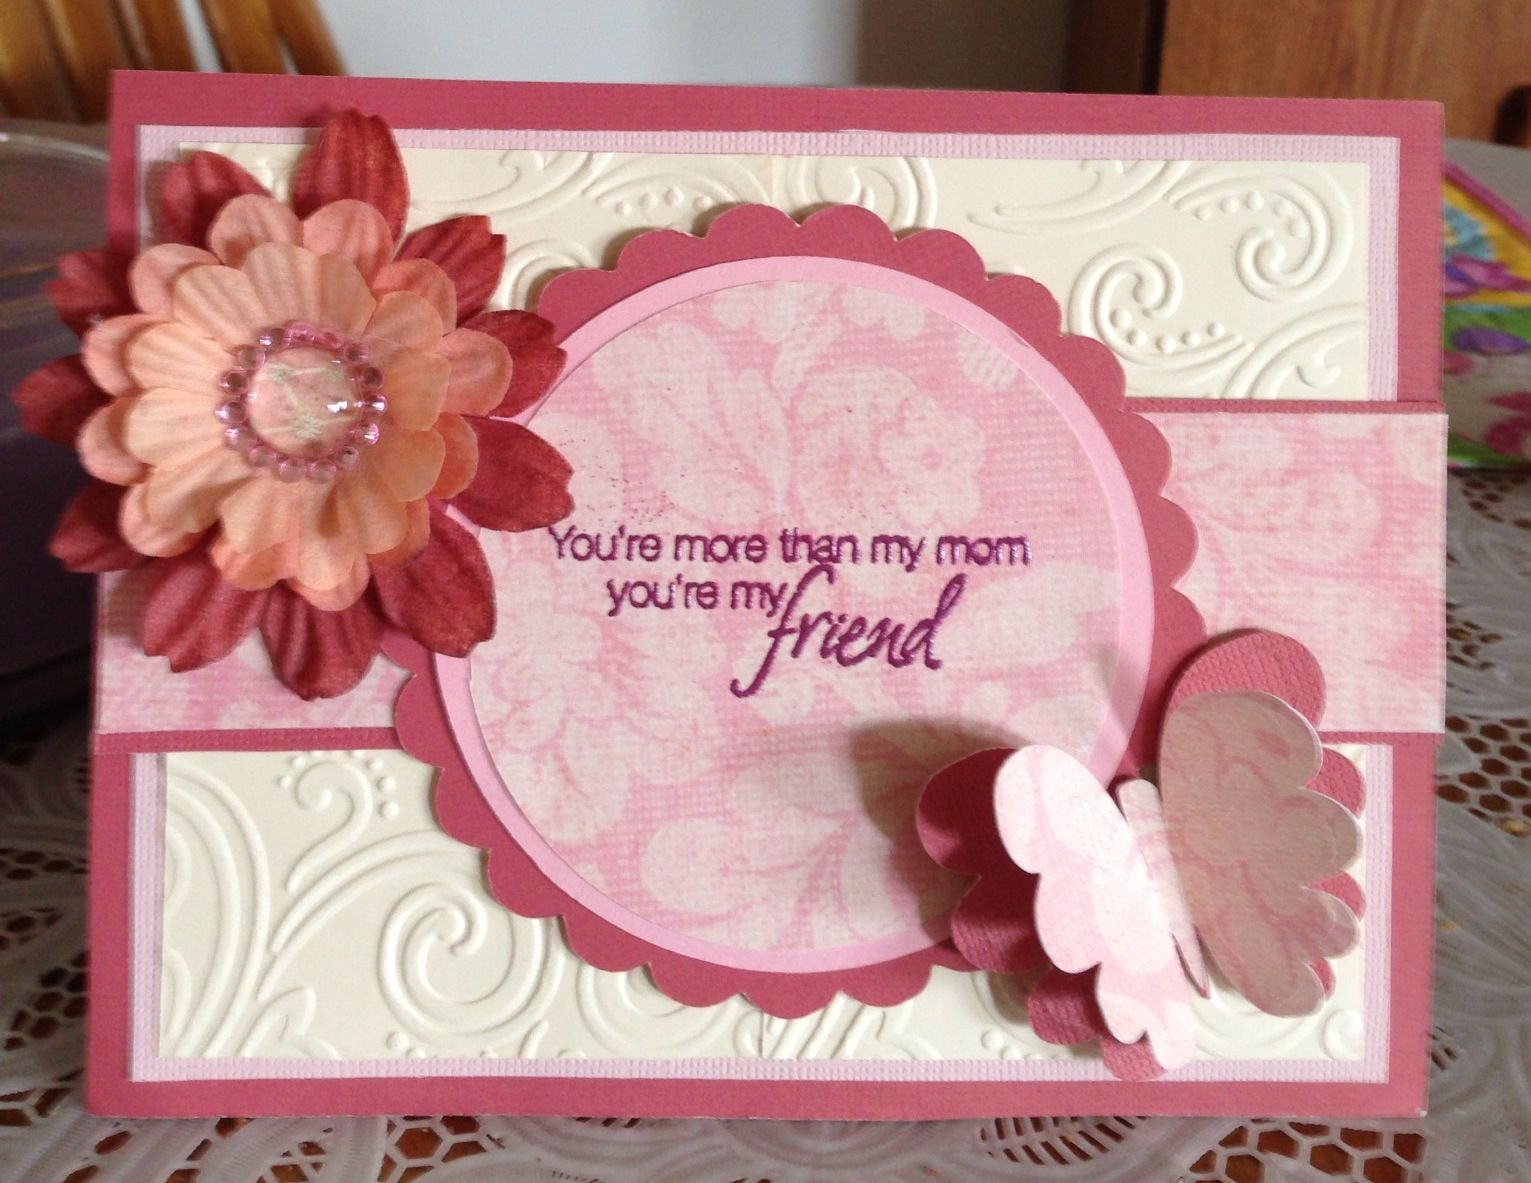 Mother's  Day Idea from Pinterest, Thank you! 3/13